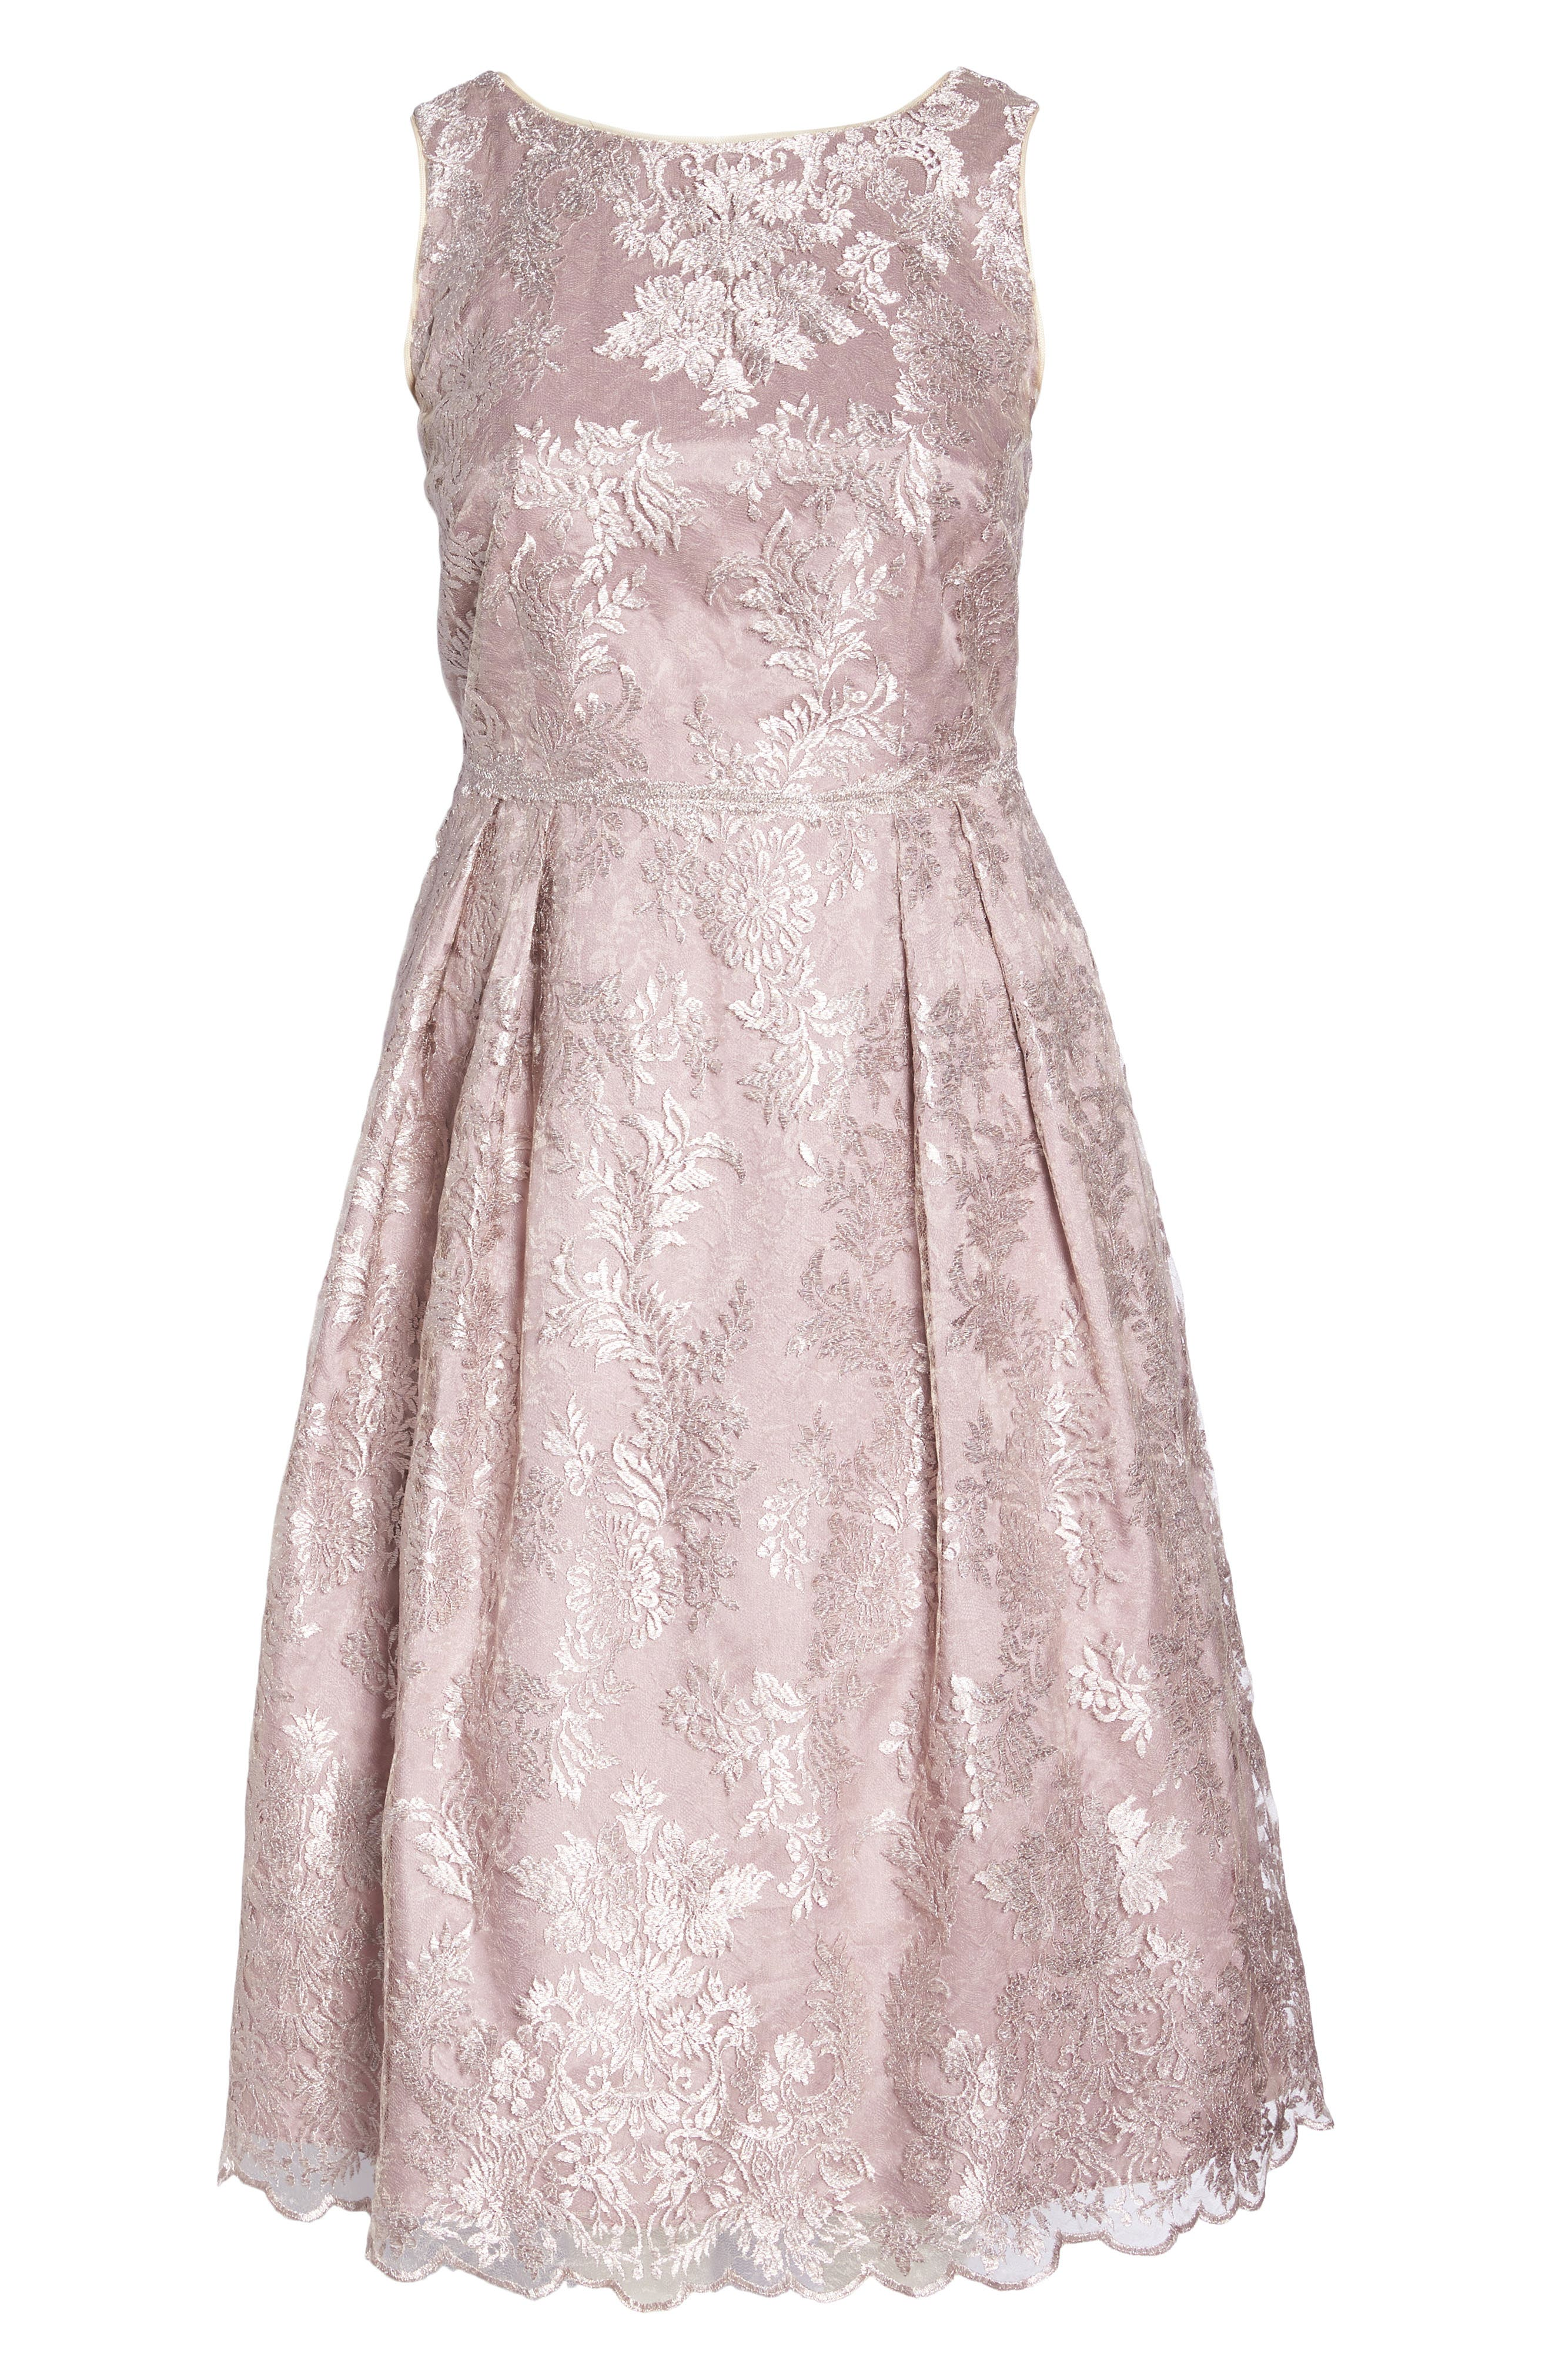 Metallic Embroidered Tea Length Dress,                             Alternate thumbnail 6, color,                             670